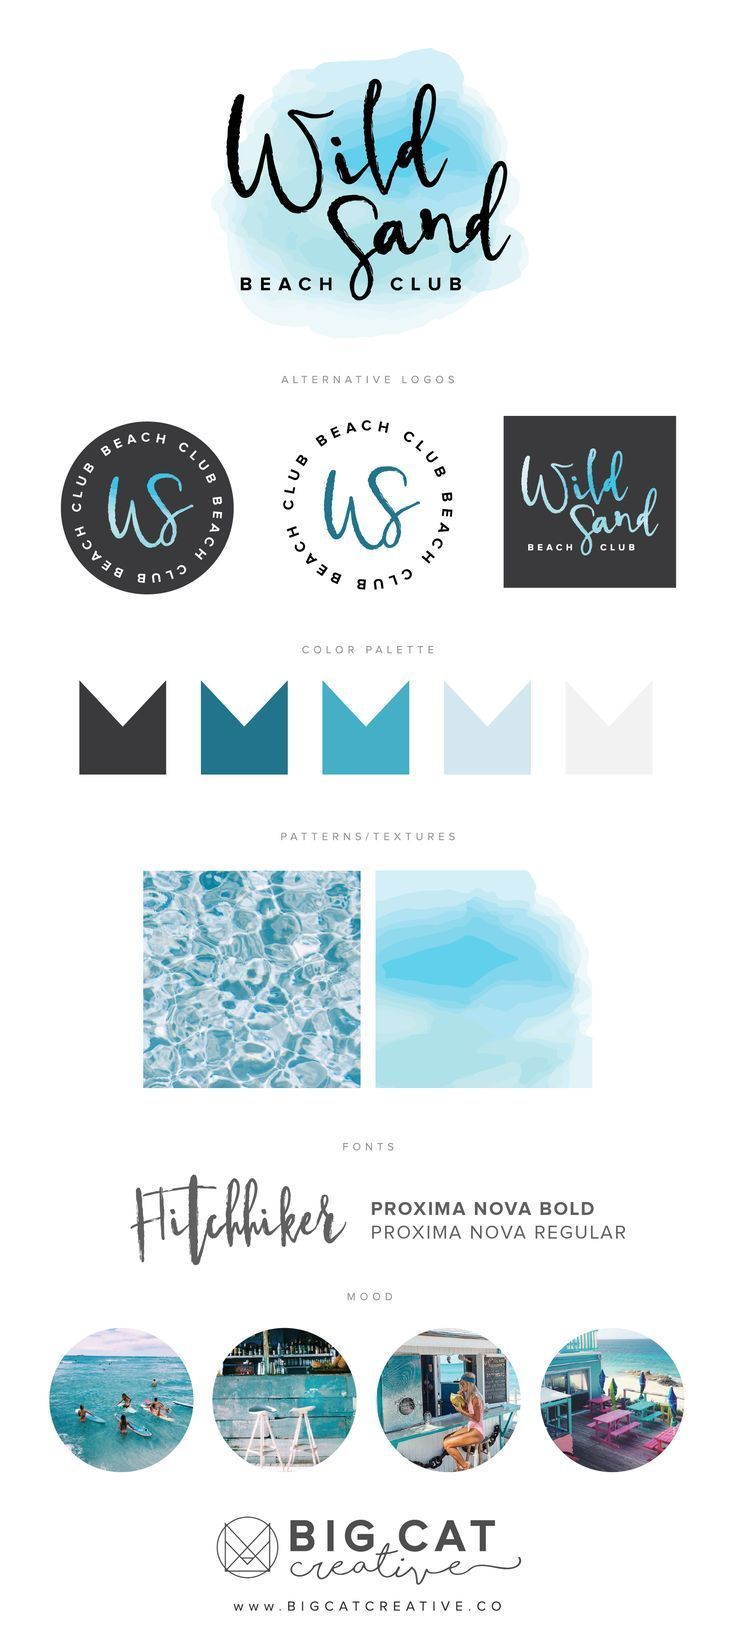 Branding Identity for Wild Sand Beach Club get your own at www.bigcatcreative.co | Big Cat Creative | Branding Style Board | Business Branding | Personal Branding | Small Business Branding | Branding Style Board | Brand Design Identity | Creative Brand Design | Small Business Design | Squarespace Website Design | Branding and Website Design for Small Business Owners | Beach Brand Design | Beach Bar Logo Design | Tropical Design |